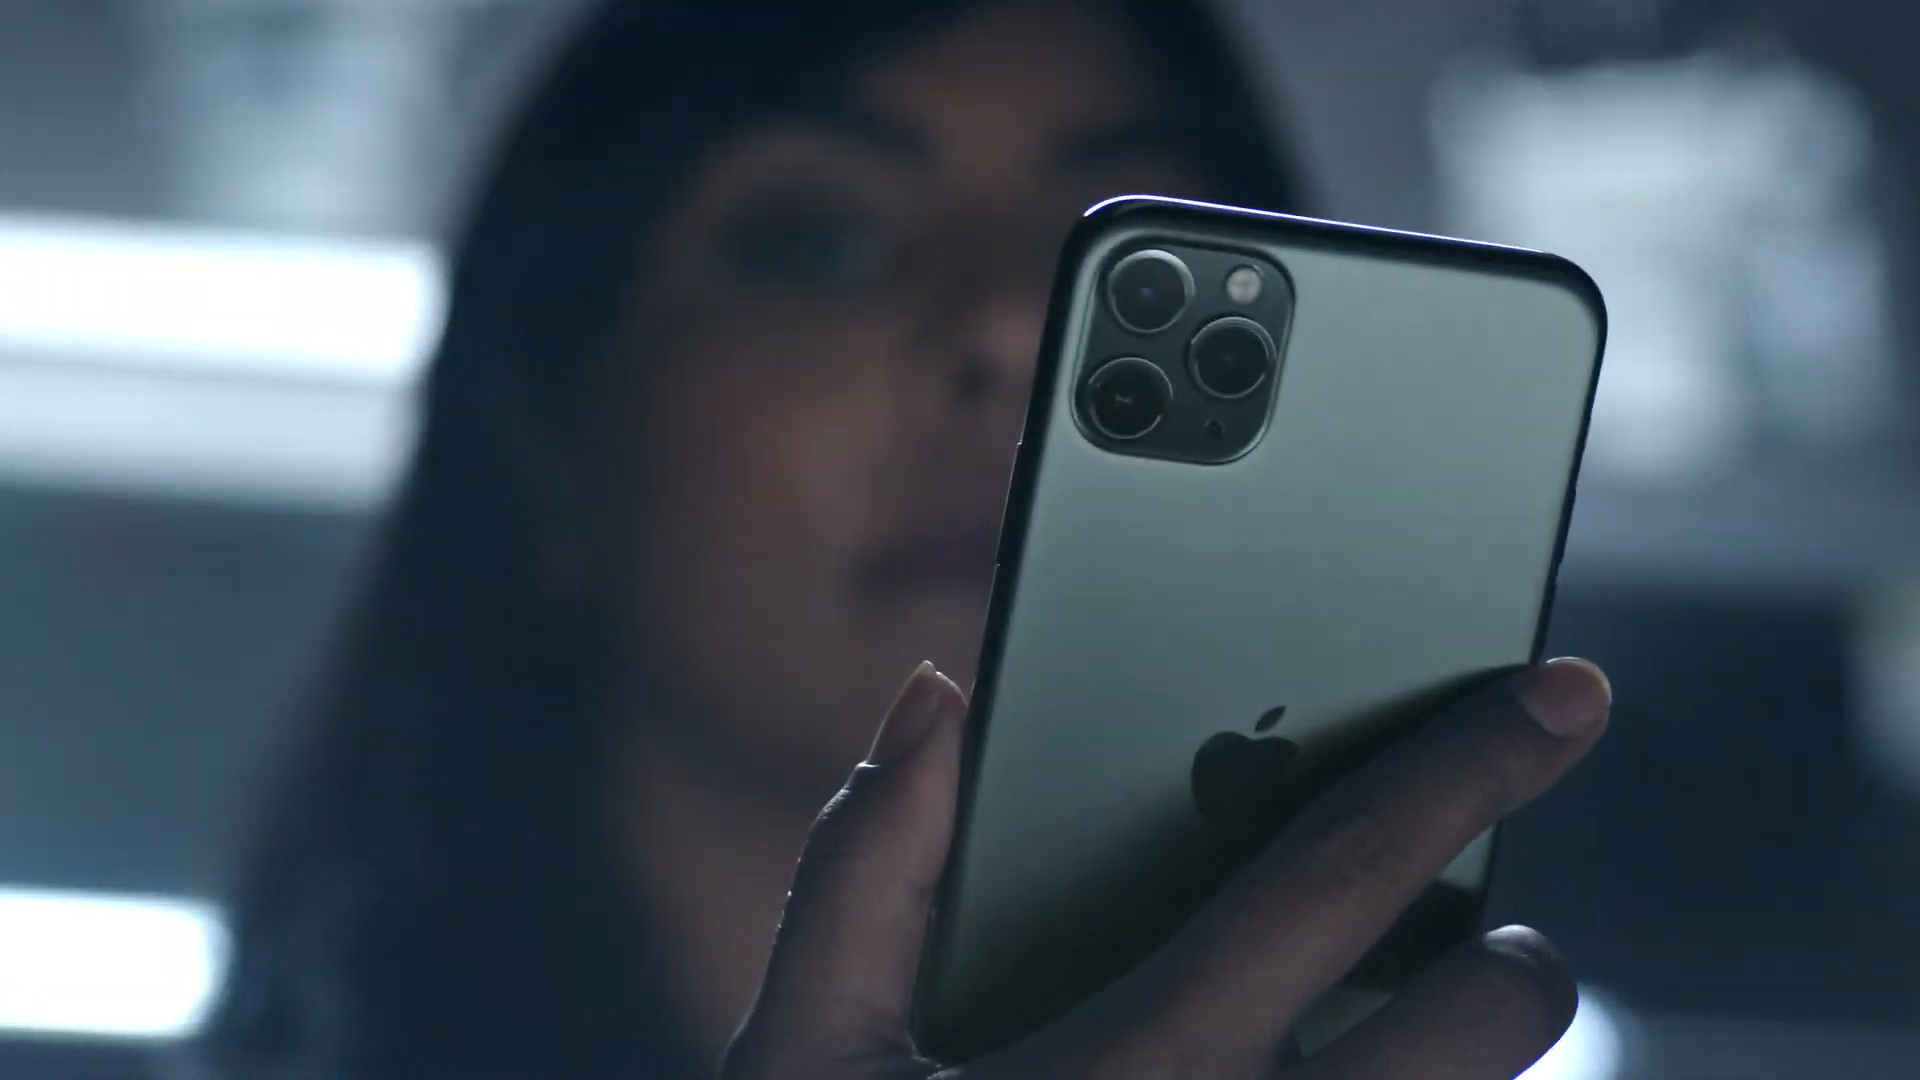 What's the difference between the iPhone 11 Pro and iPhone